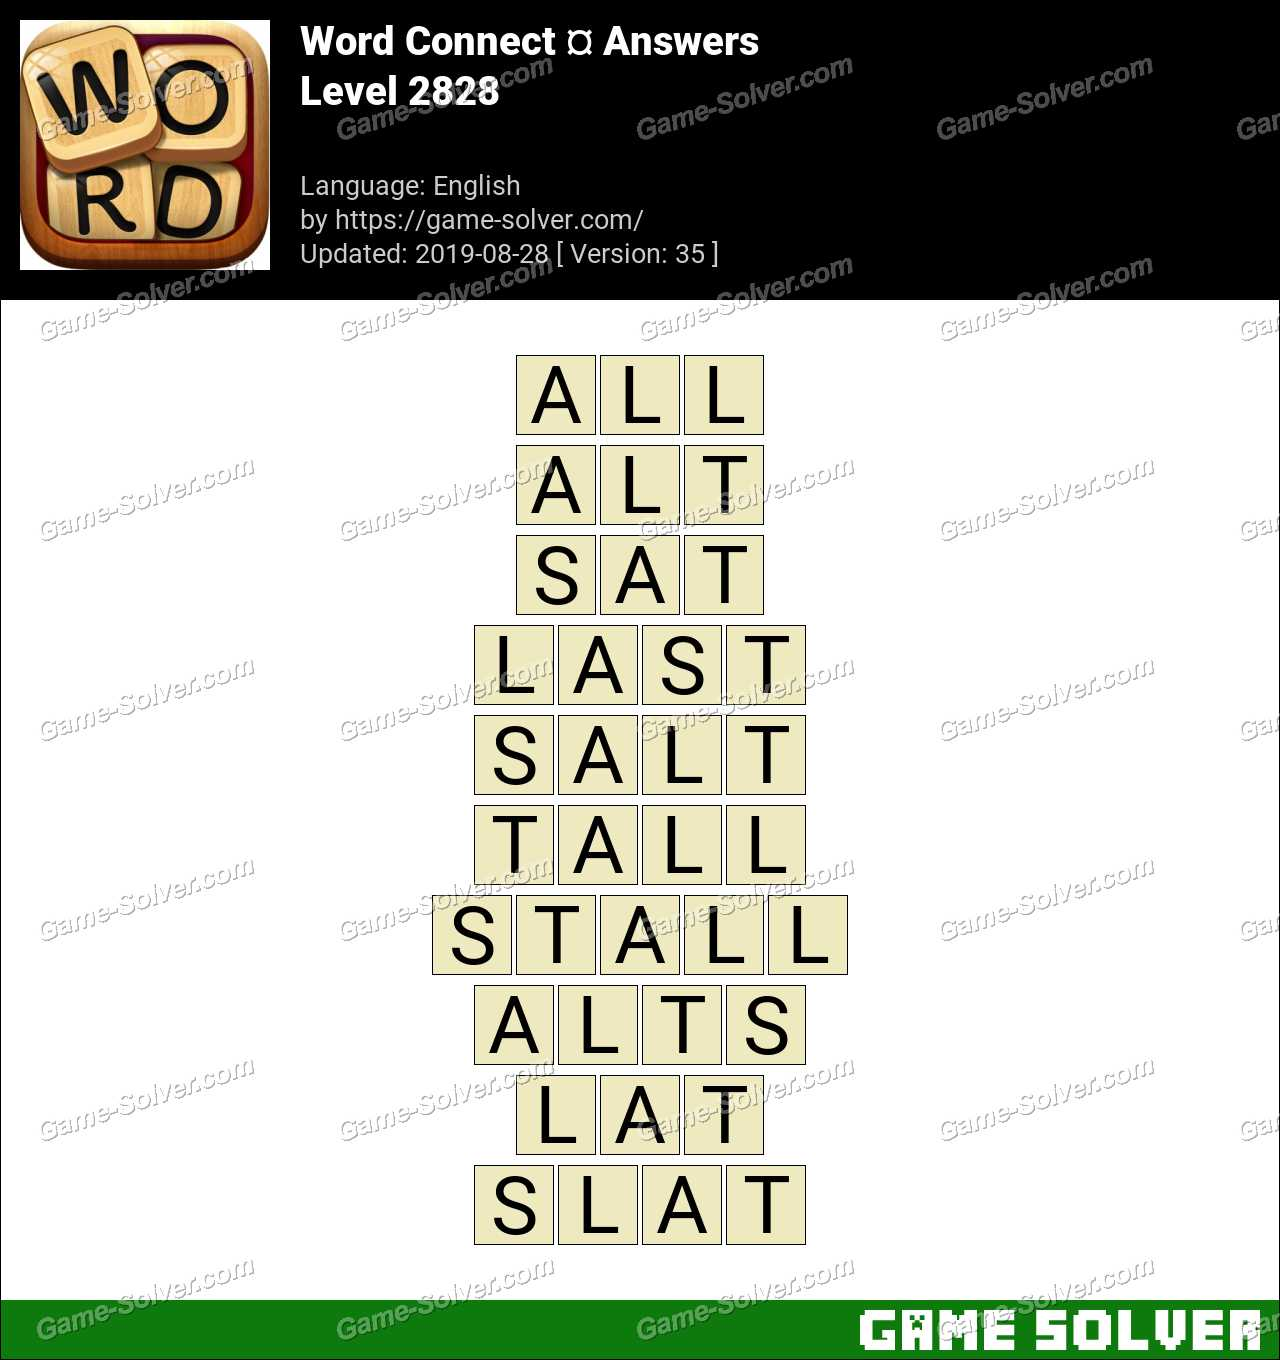 Word Connect Level 2828 Answers